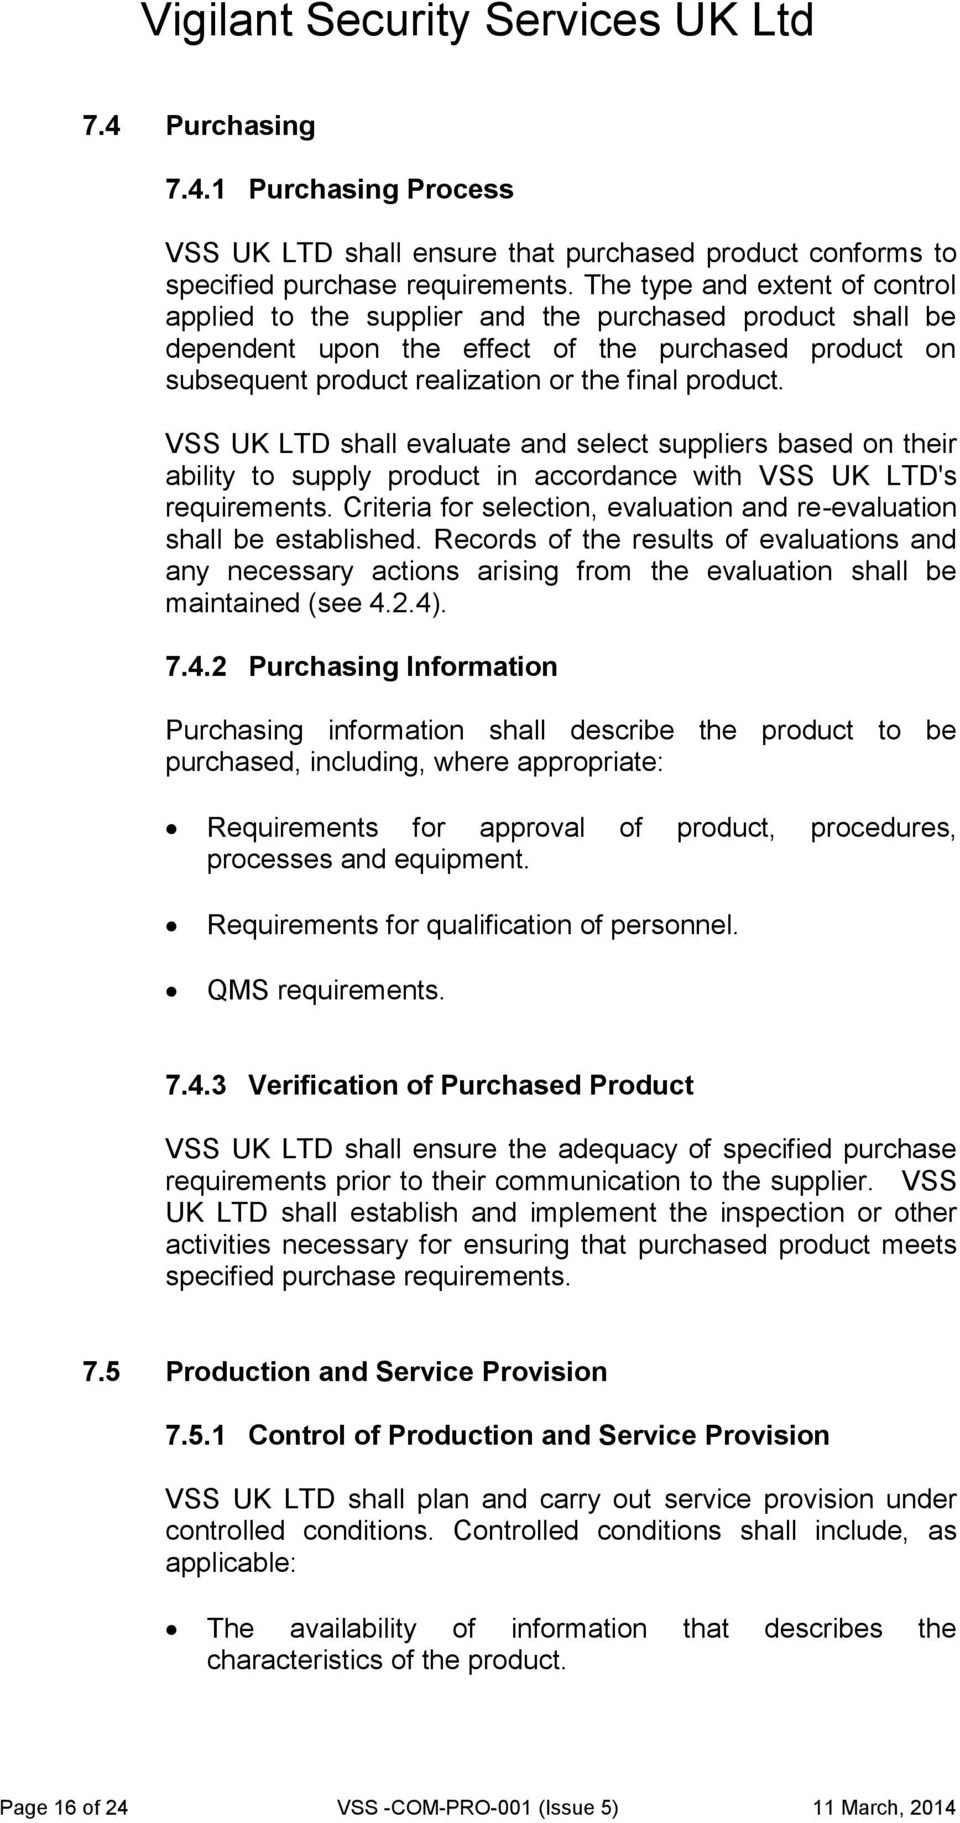 VSS UK LTD shall evaluate and select suppliers based on their ability to supply product in accordance with VSS UK LTD's requirements.